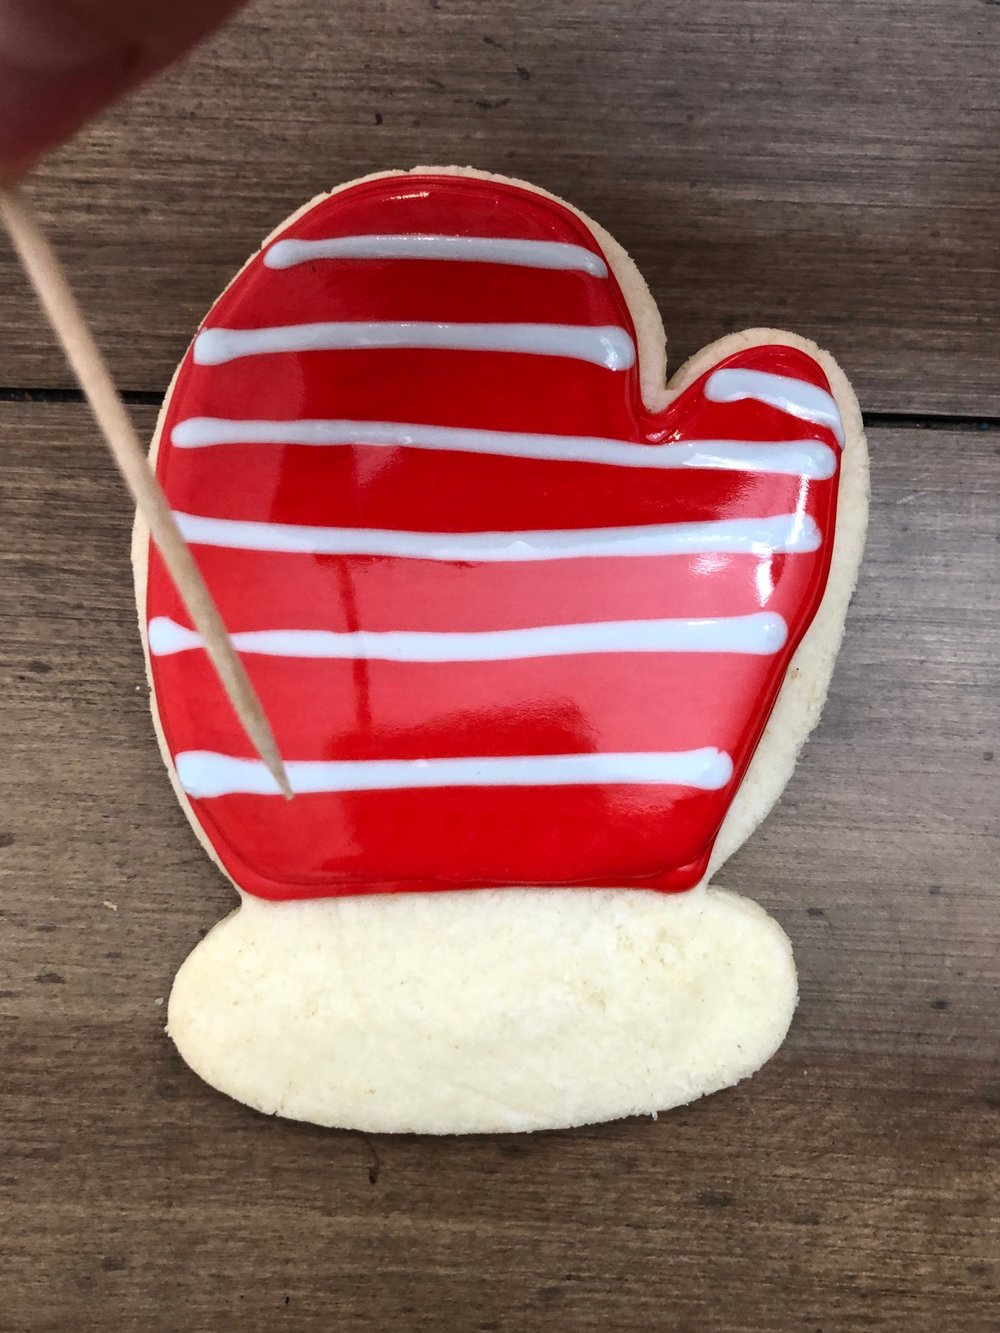 First- outline the cookie and fill it in with your desired color (here I did red). Then immediately make horizontal lines with a different color.